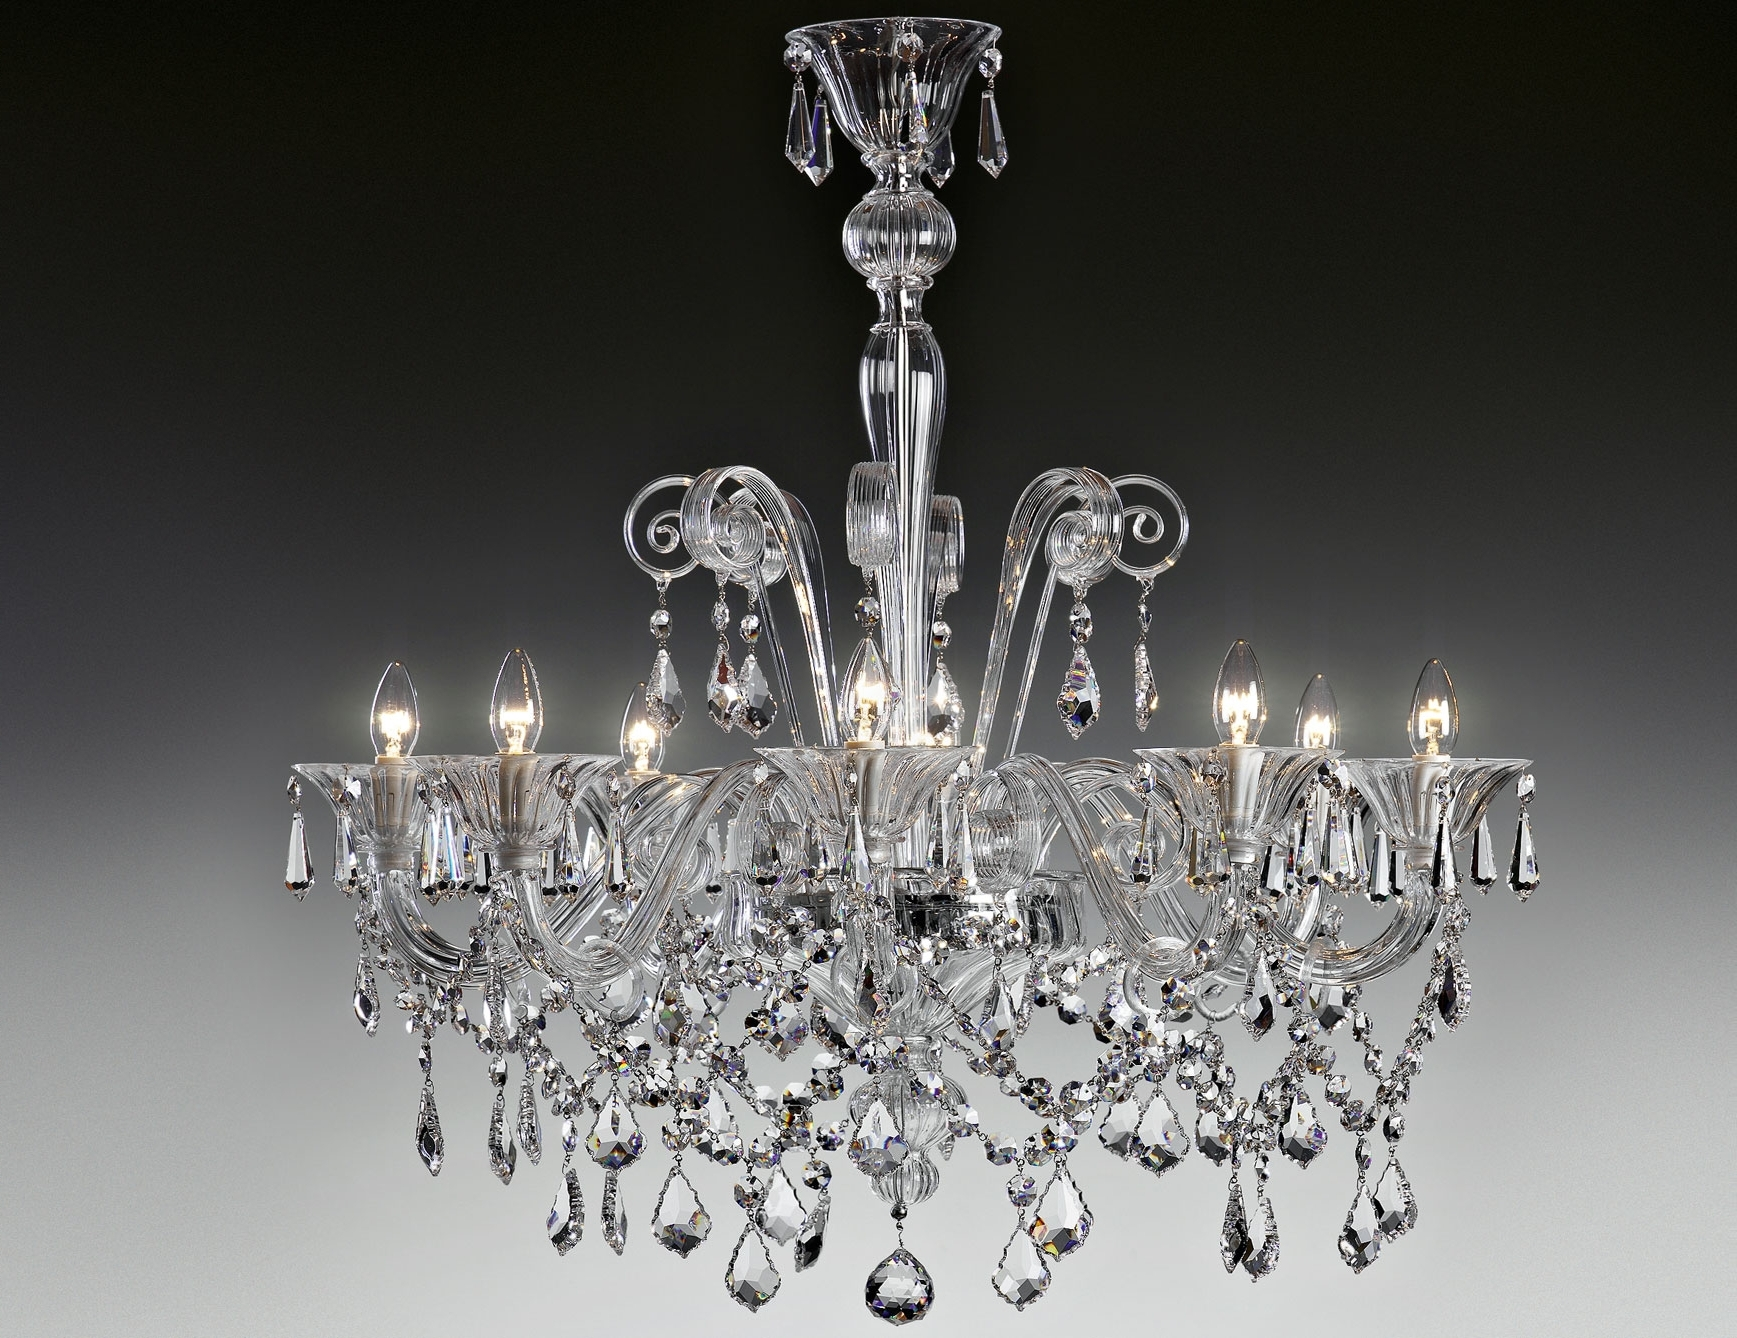 Fashionable Nella Vetrina Lulu 9016 8 Modern Italian Chandelier Clear Murano Glass Within Modern Italian Chandeliers (View 5 of 20)